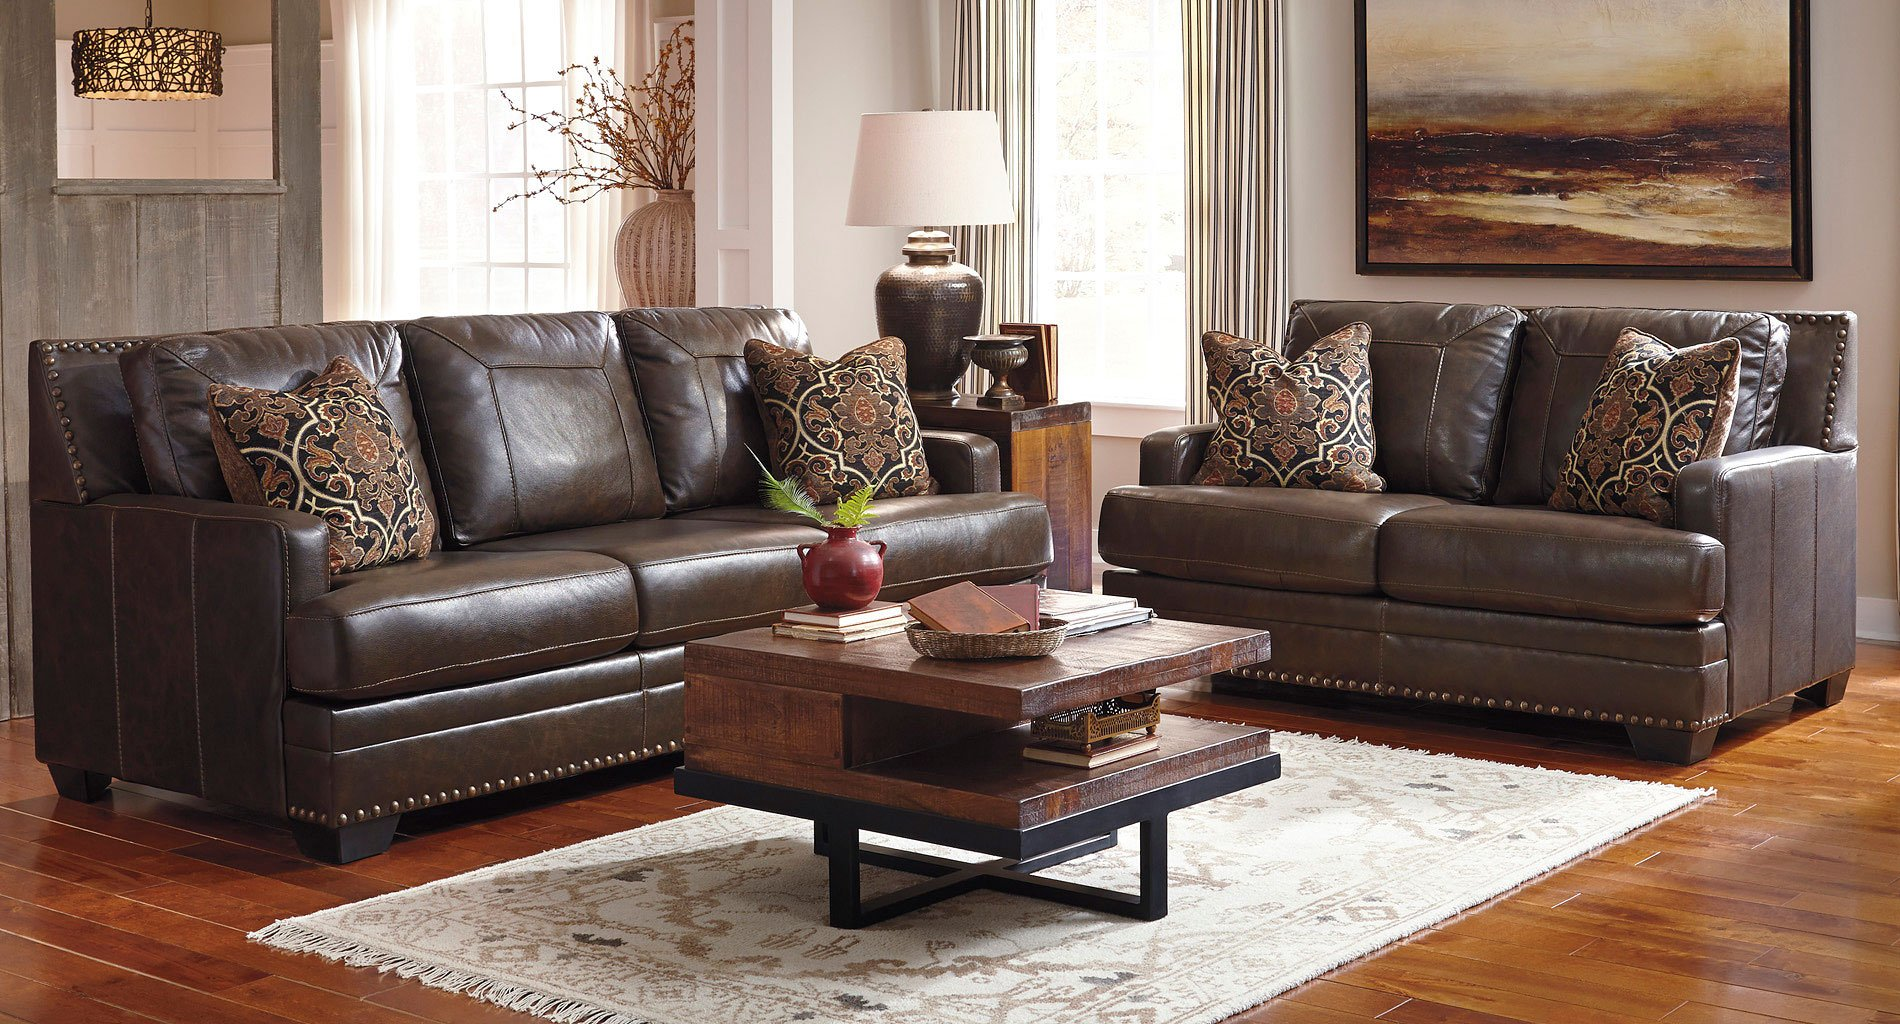 Corvan Antique Living Room Set Signature Design | Furniture Cart